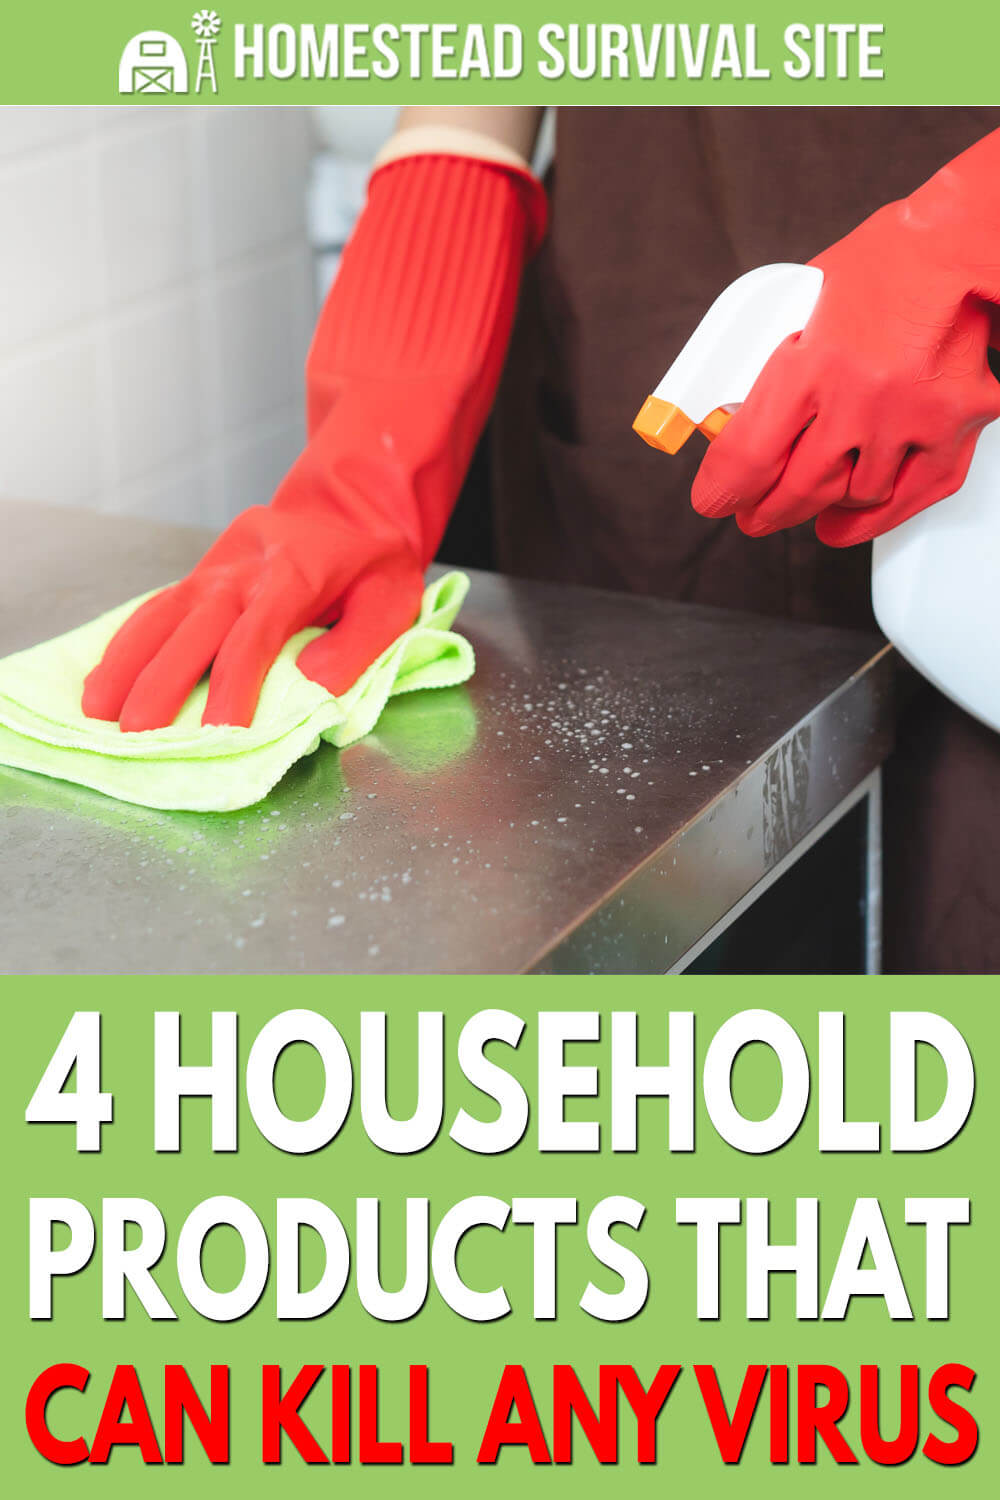 4 Household Products That Can Kill Any Virus